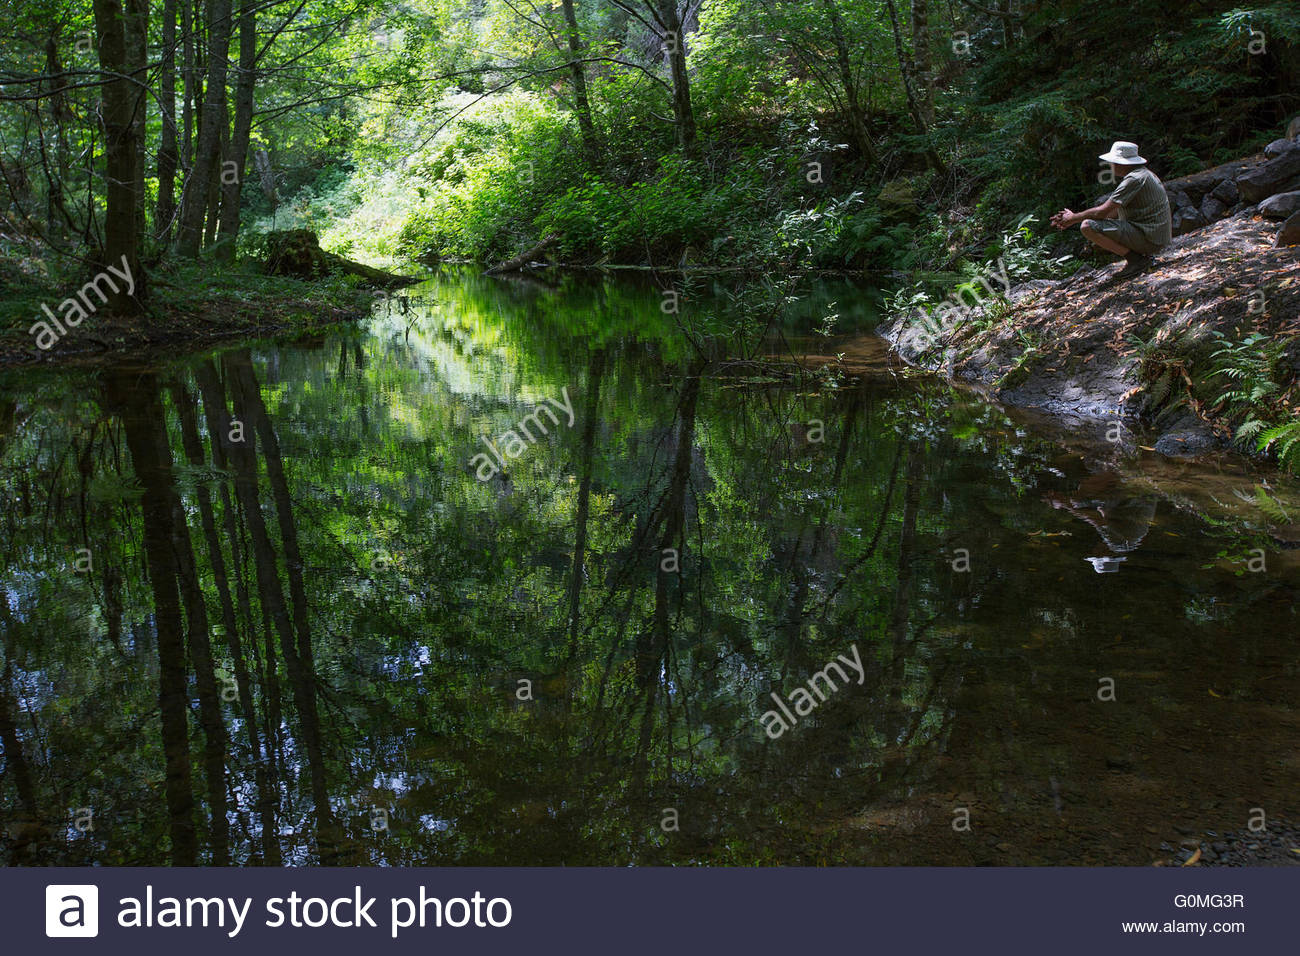 Man crouching at calm lake in woods - Stock Image